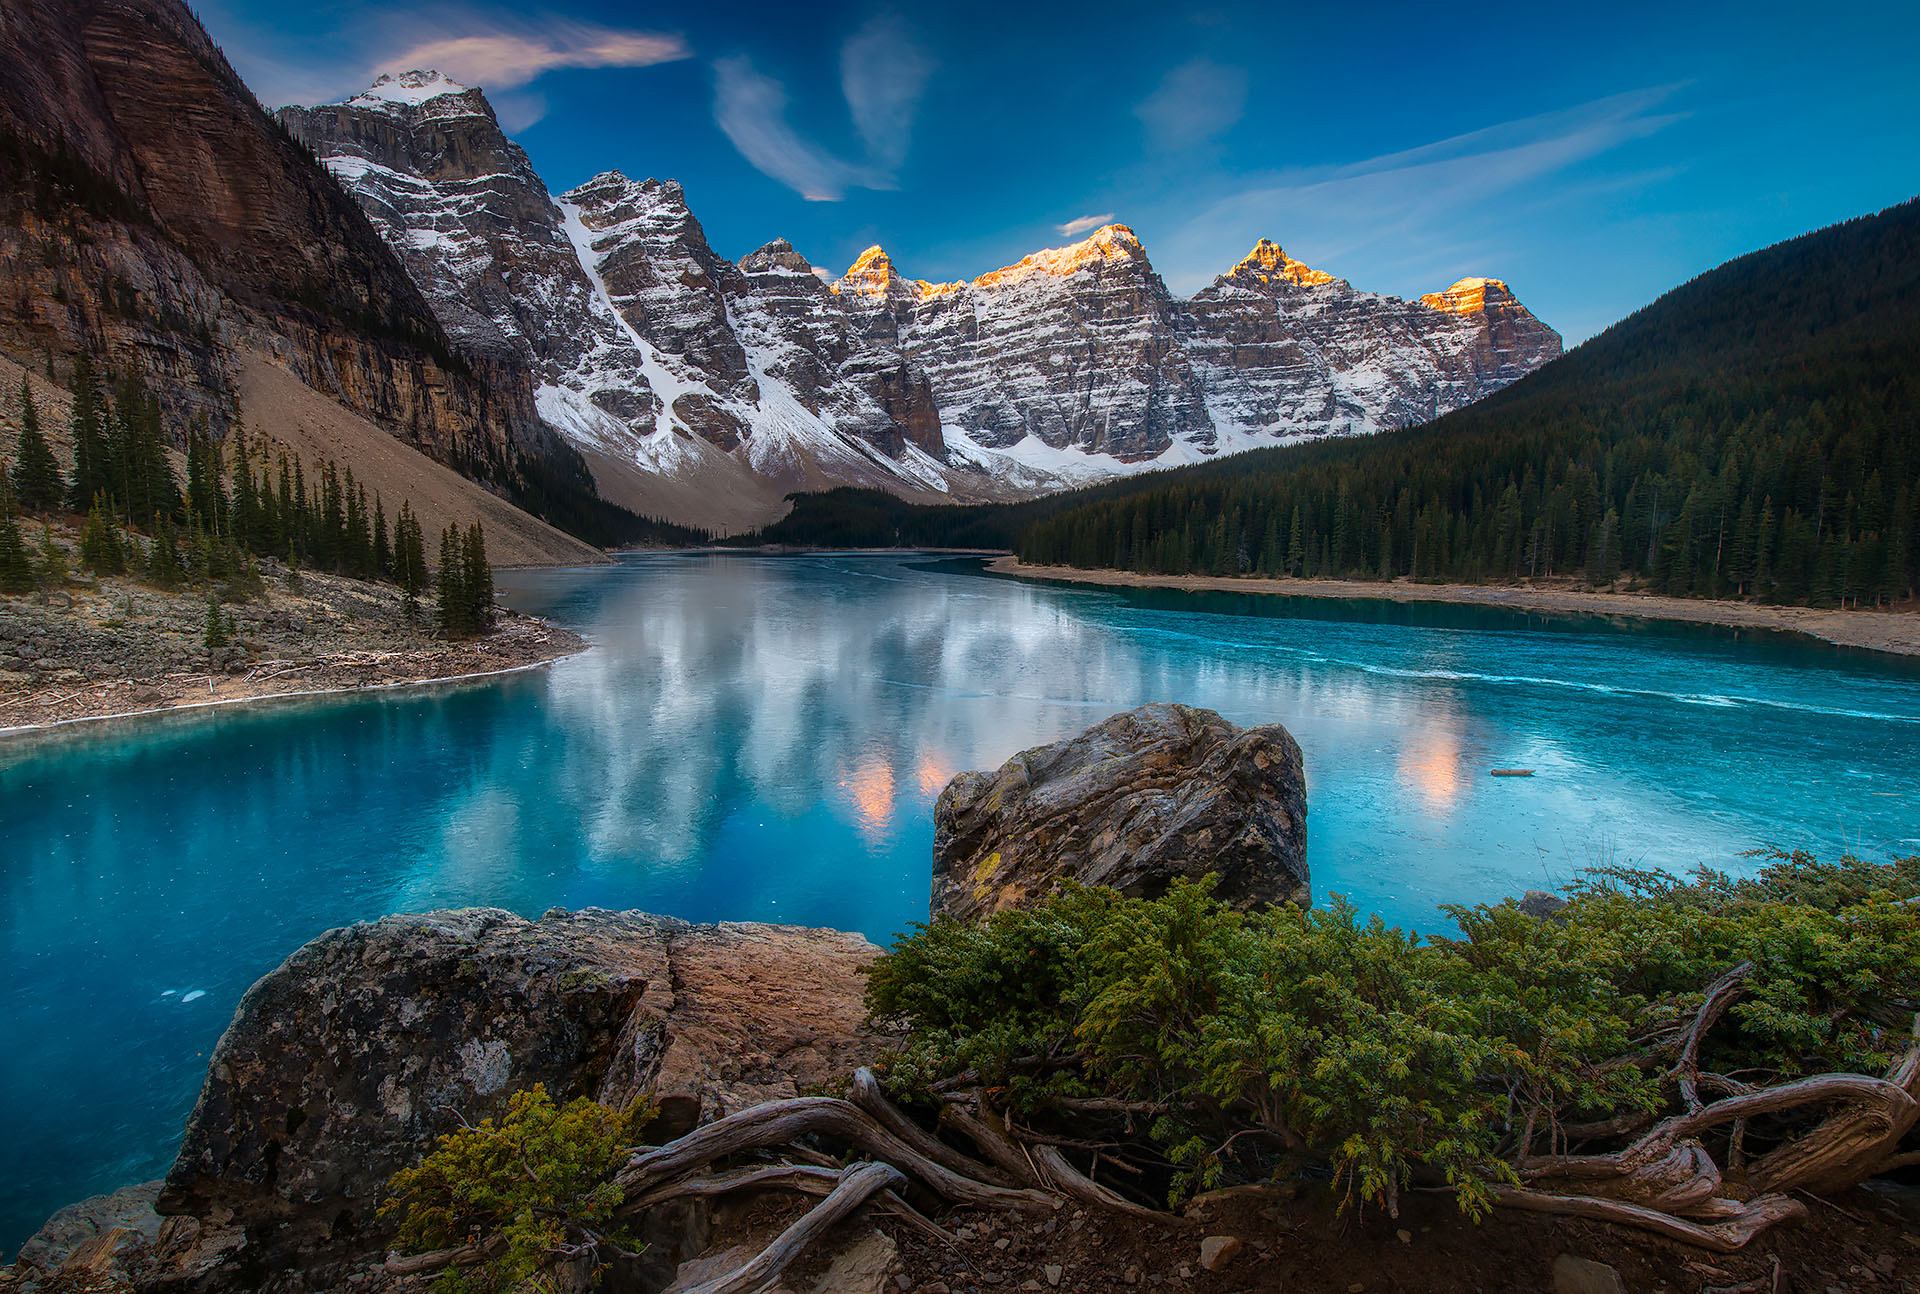 The-Awakening_Moraine-Lake-Alberta-Canada